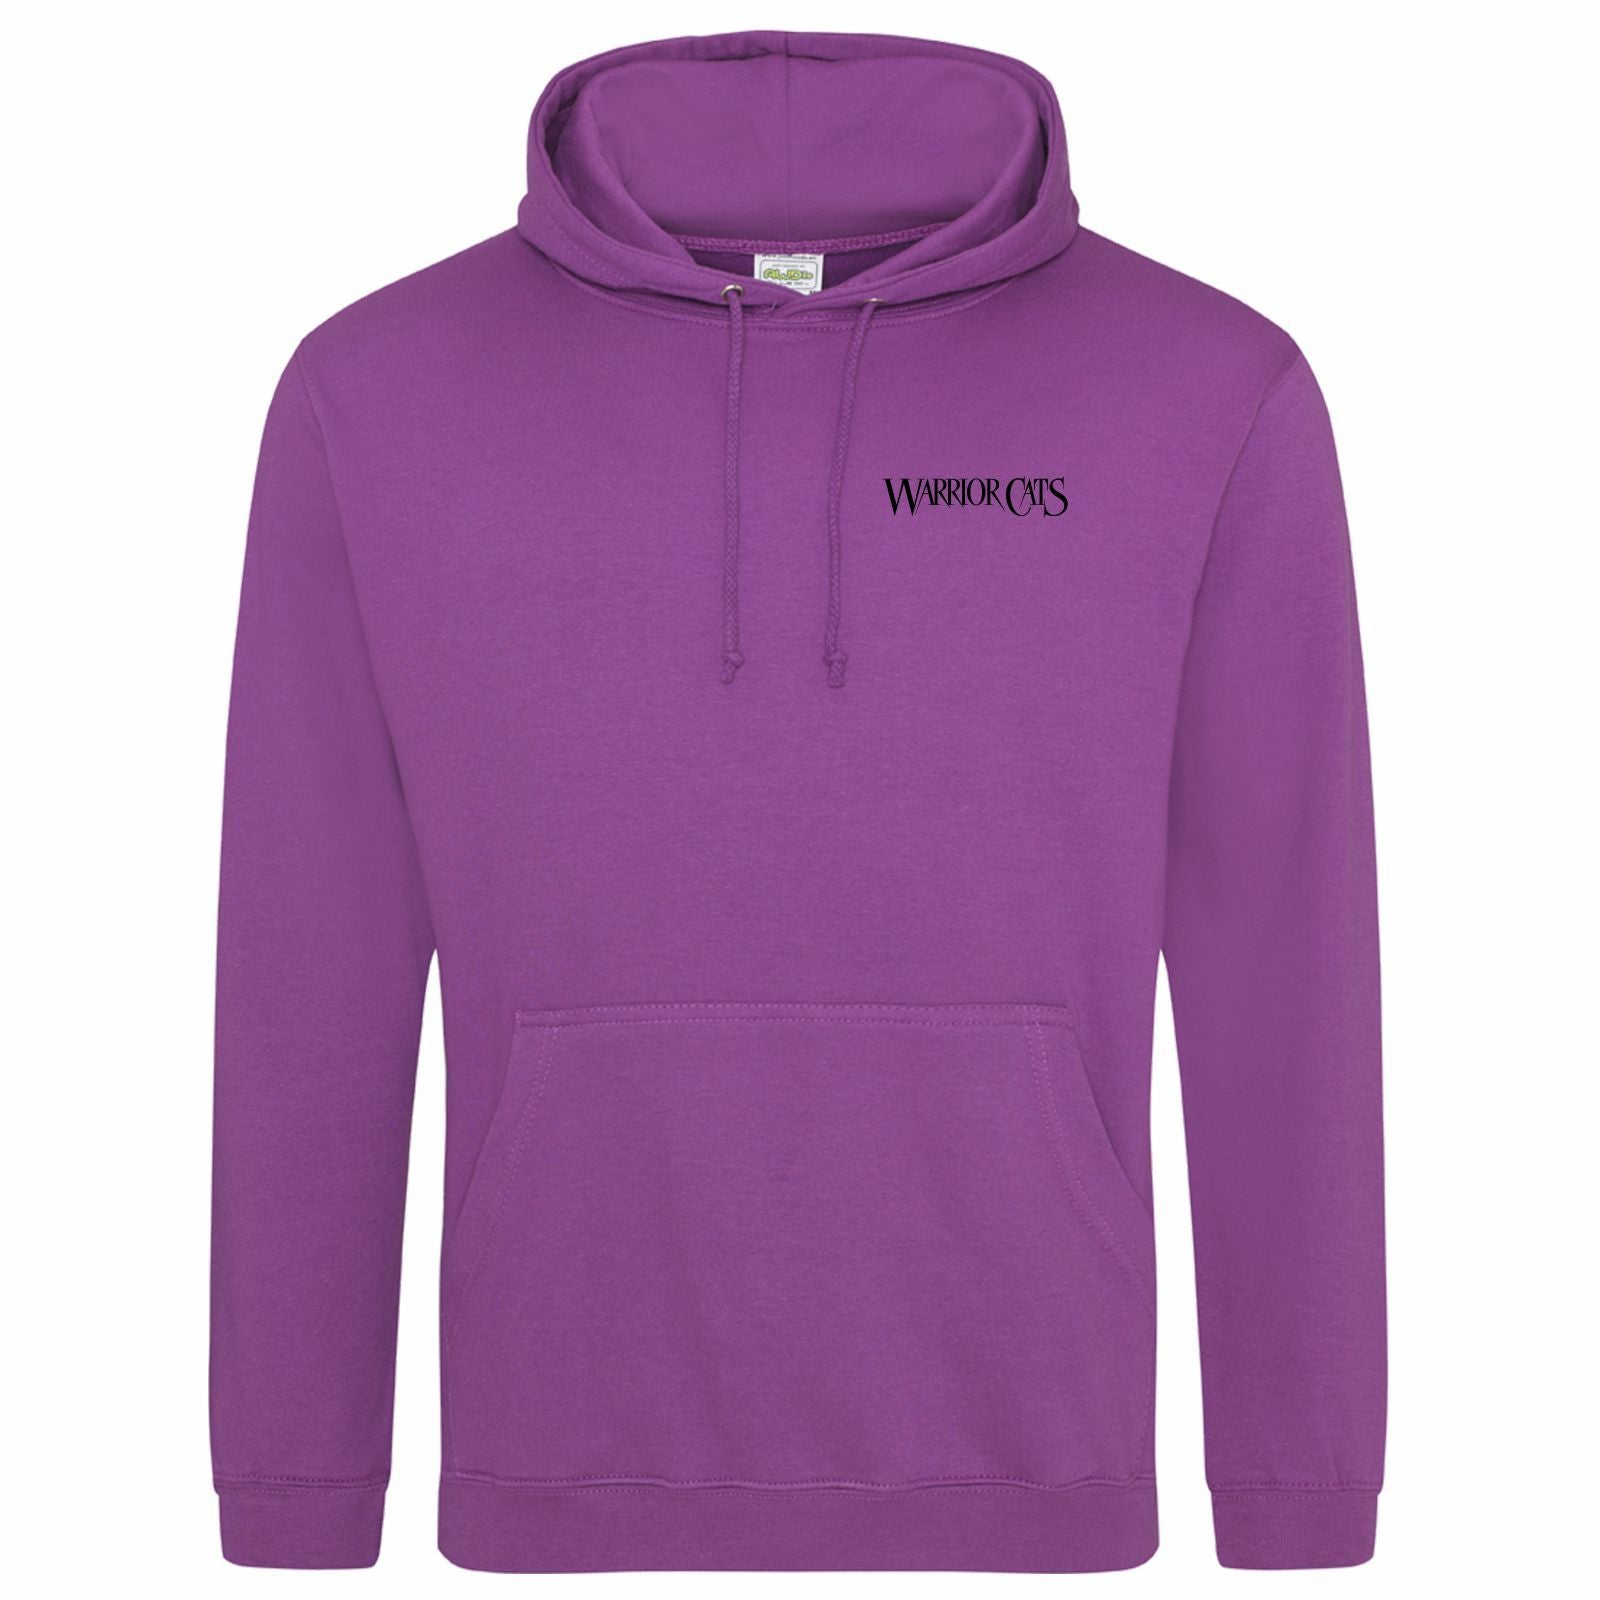 WARRIORCATS: STARCLAN Adult Fleece Hoody - Magenta